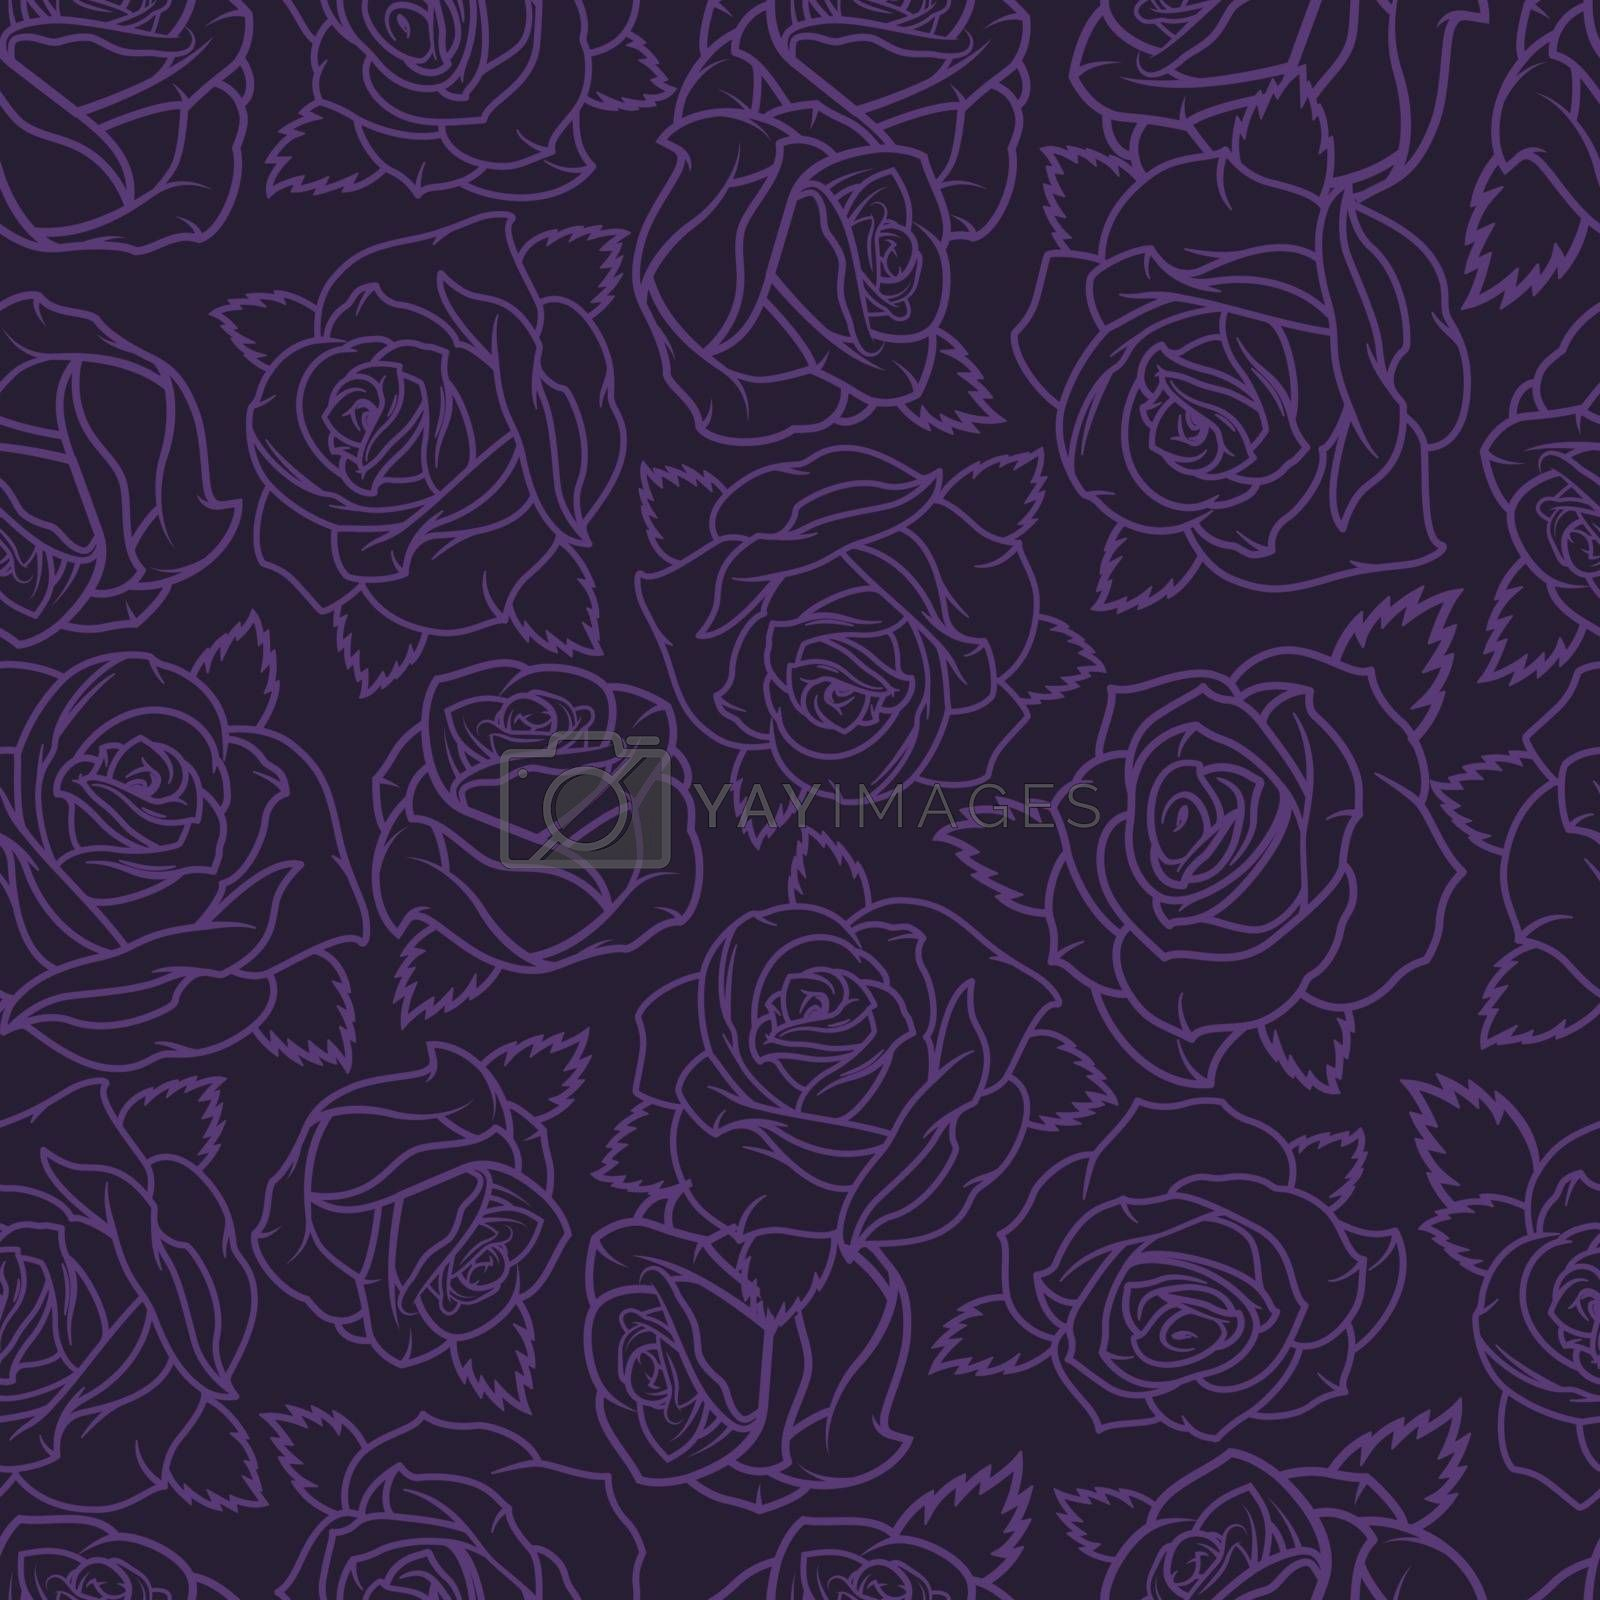 Vintage floral natural seamless pattern with purple roses silhouettes on dark background vector illustration